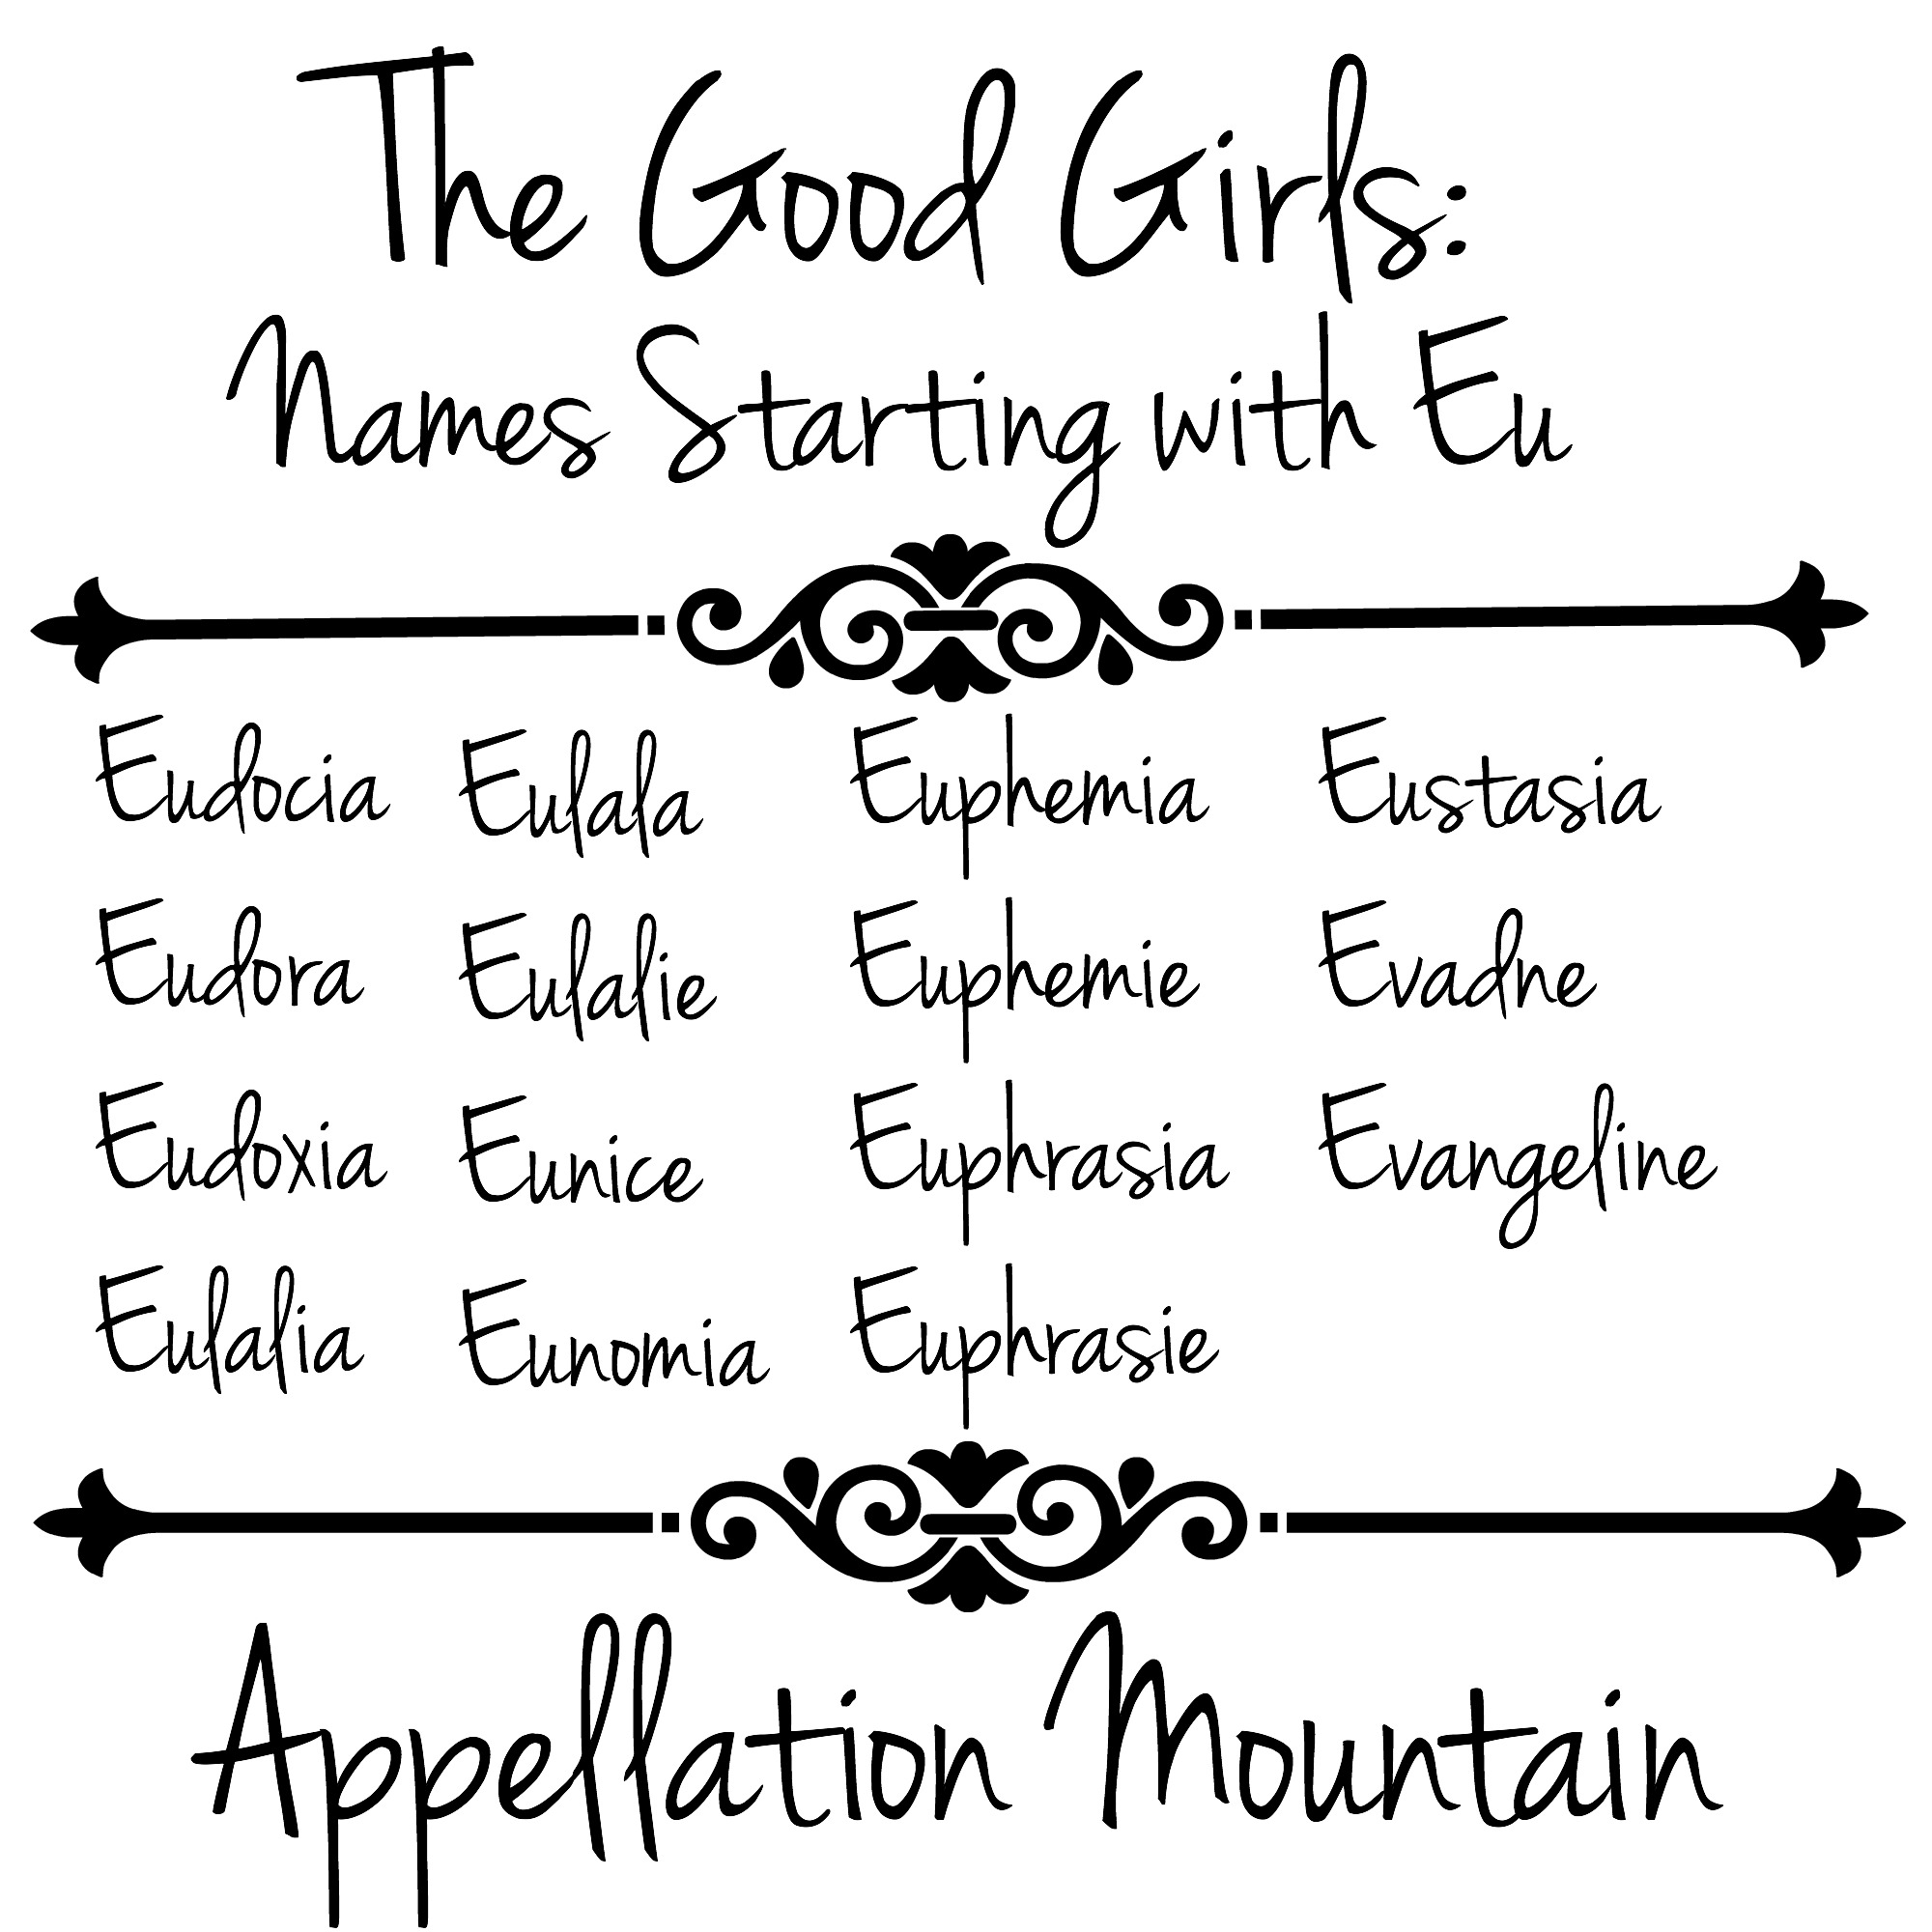 The Good Girls Names Starting With Eu